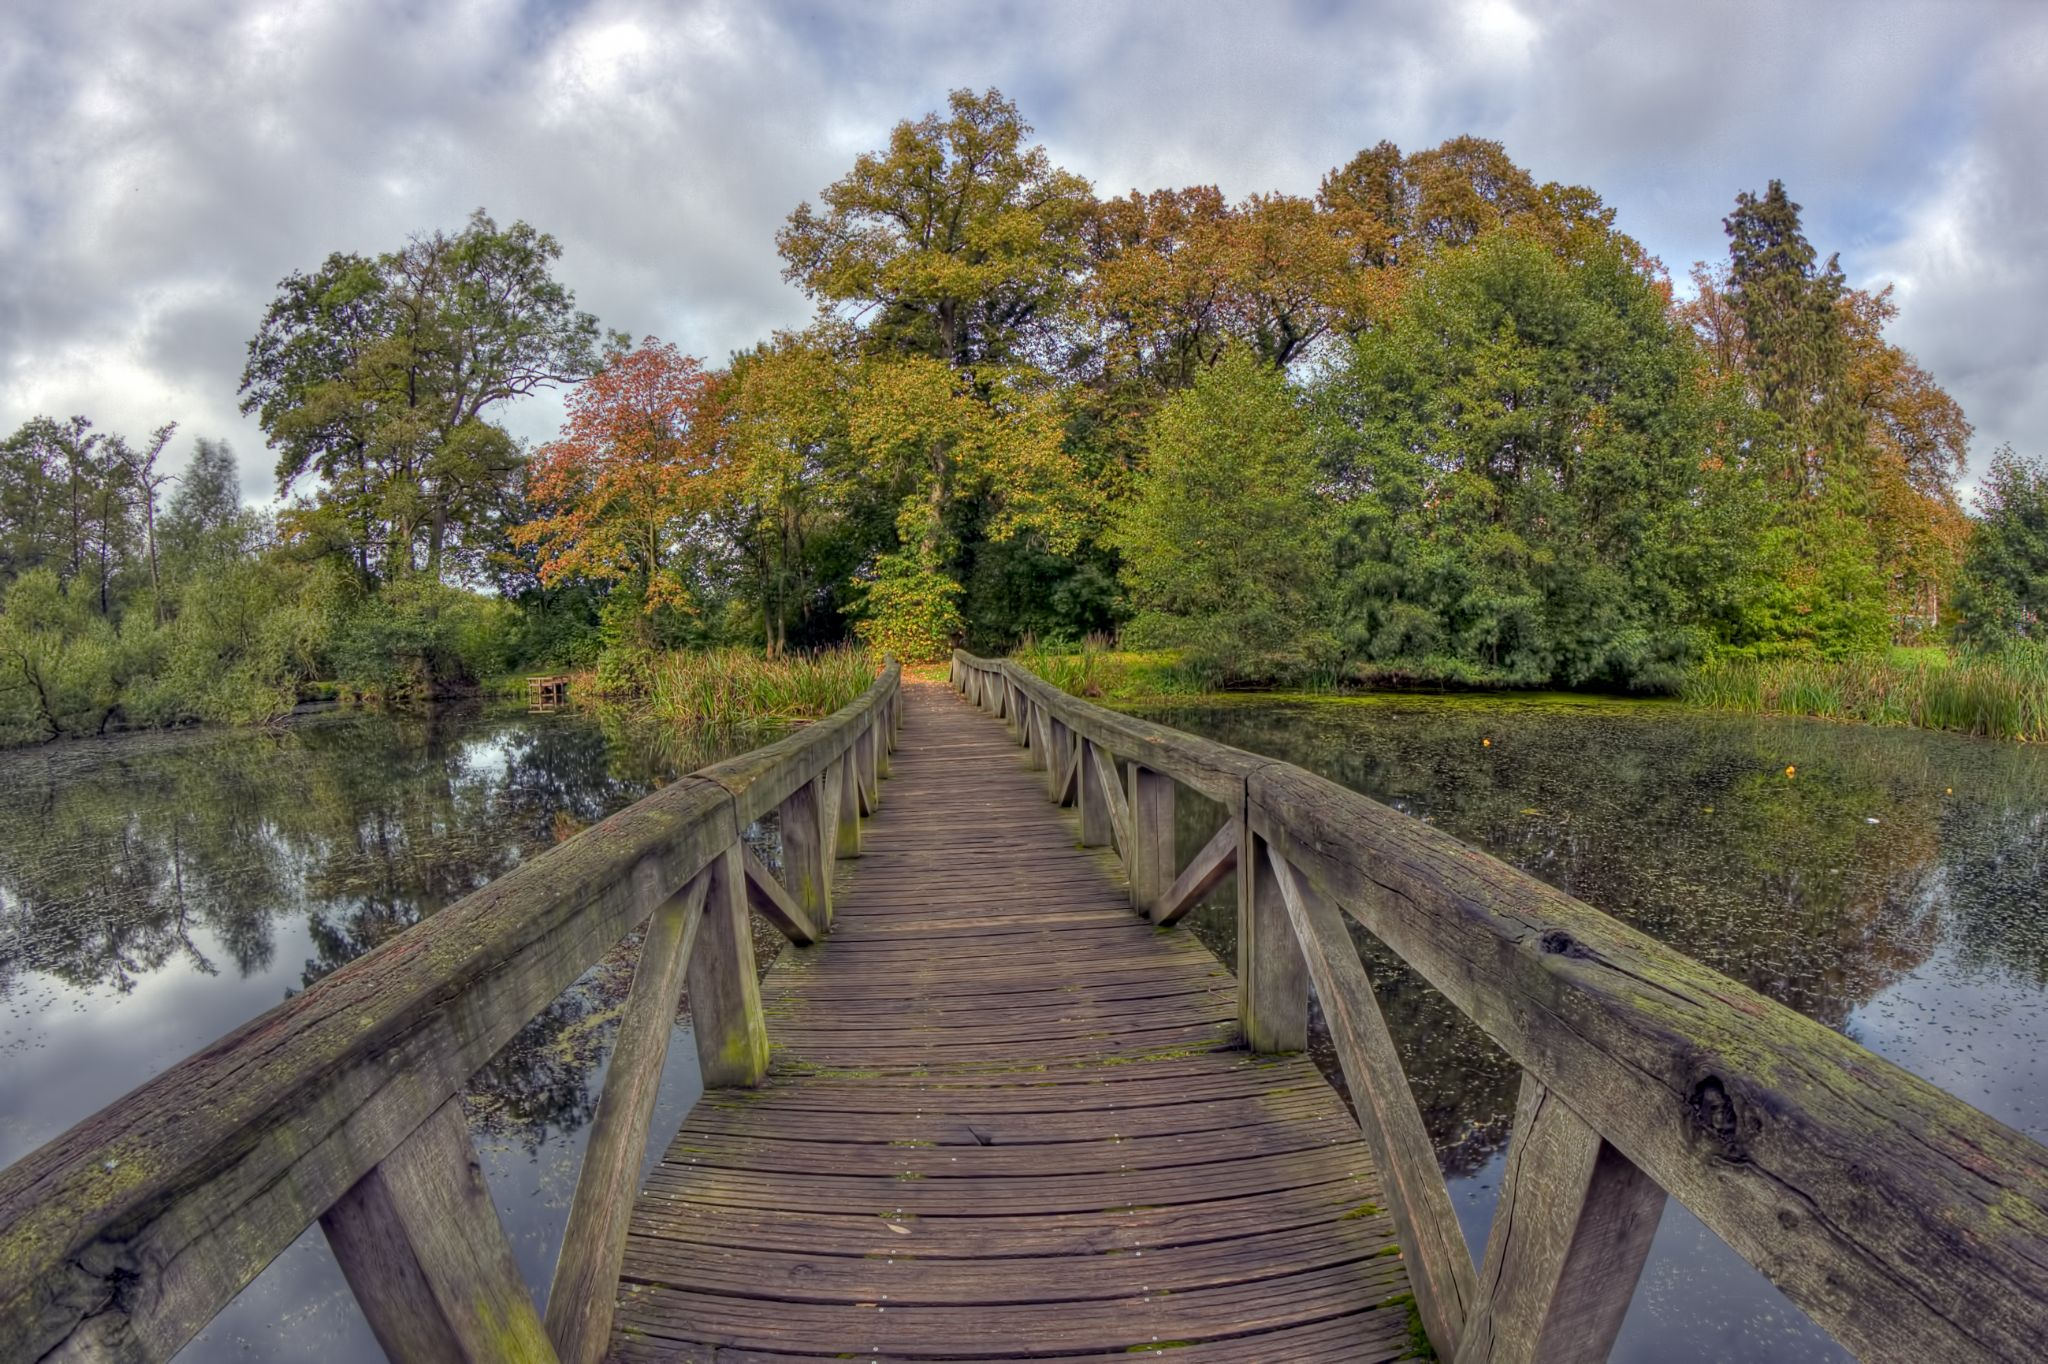 Parc Verviers by Yves Droeven